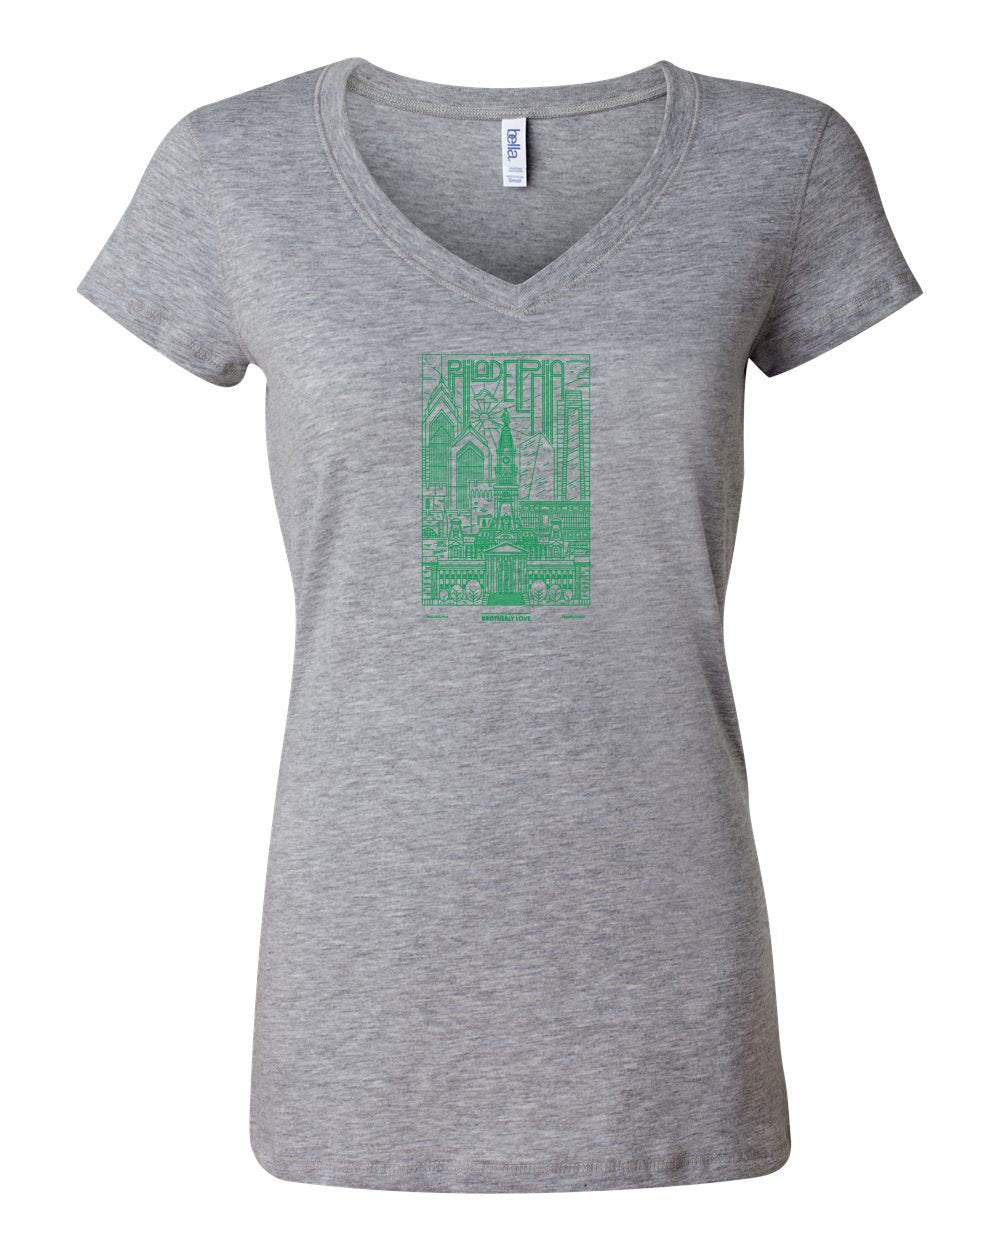 Philadelphia Skyline V2 (Green Ink) LADIES Junior Fit V-Neck